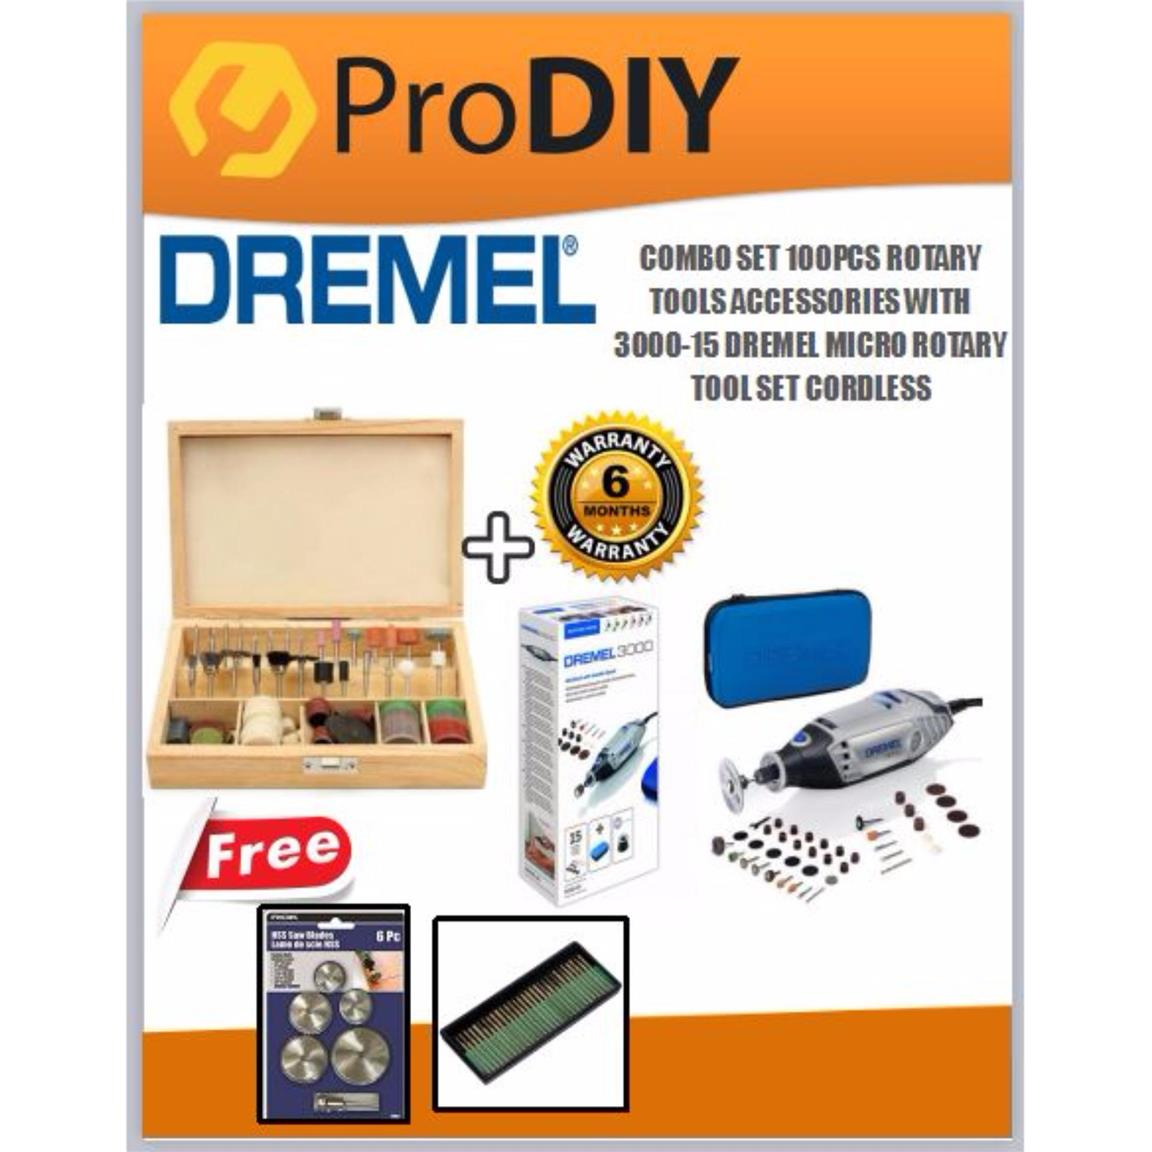 COMBO SET 100PCS ROTARY TOOLS ACCESSORIES WITH 3000-15 DREMEL SET